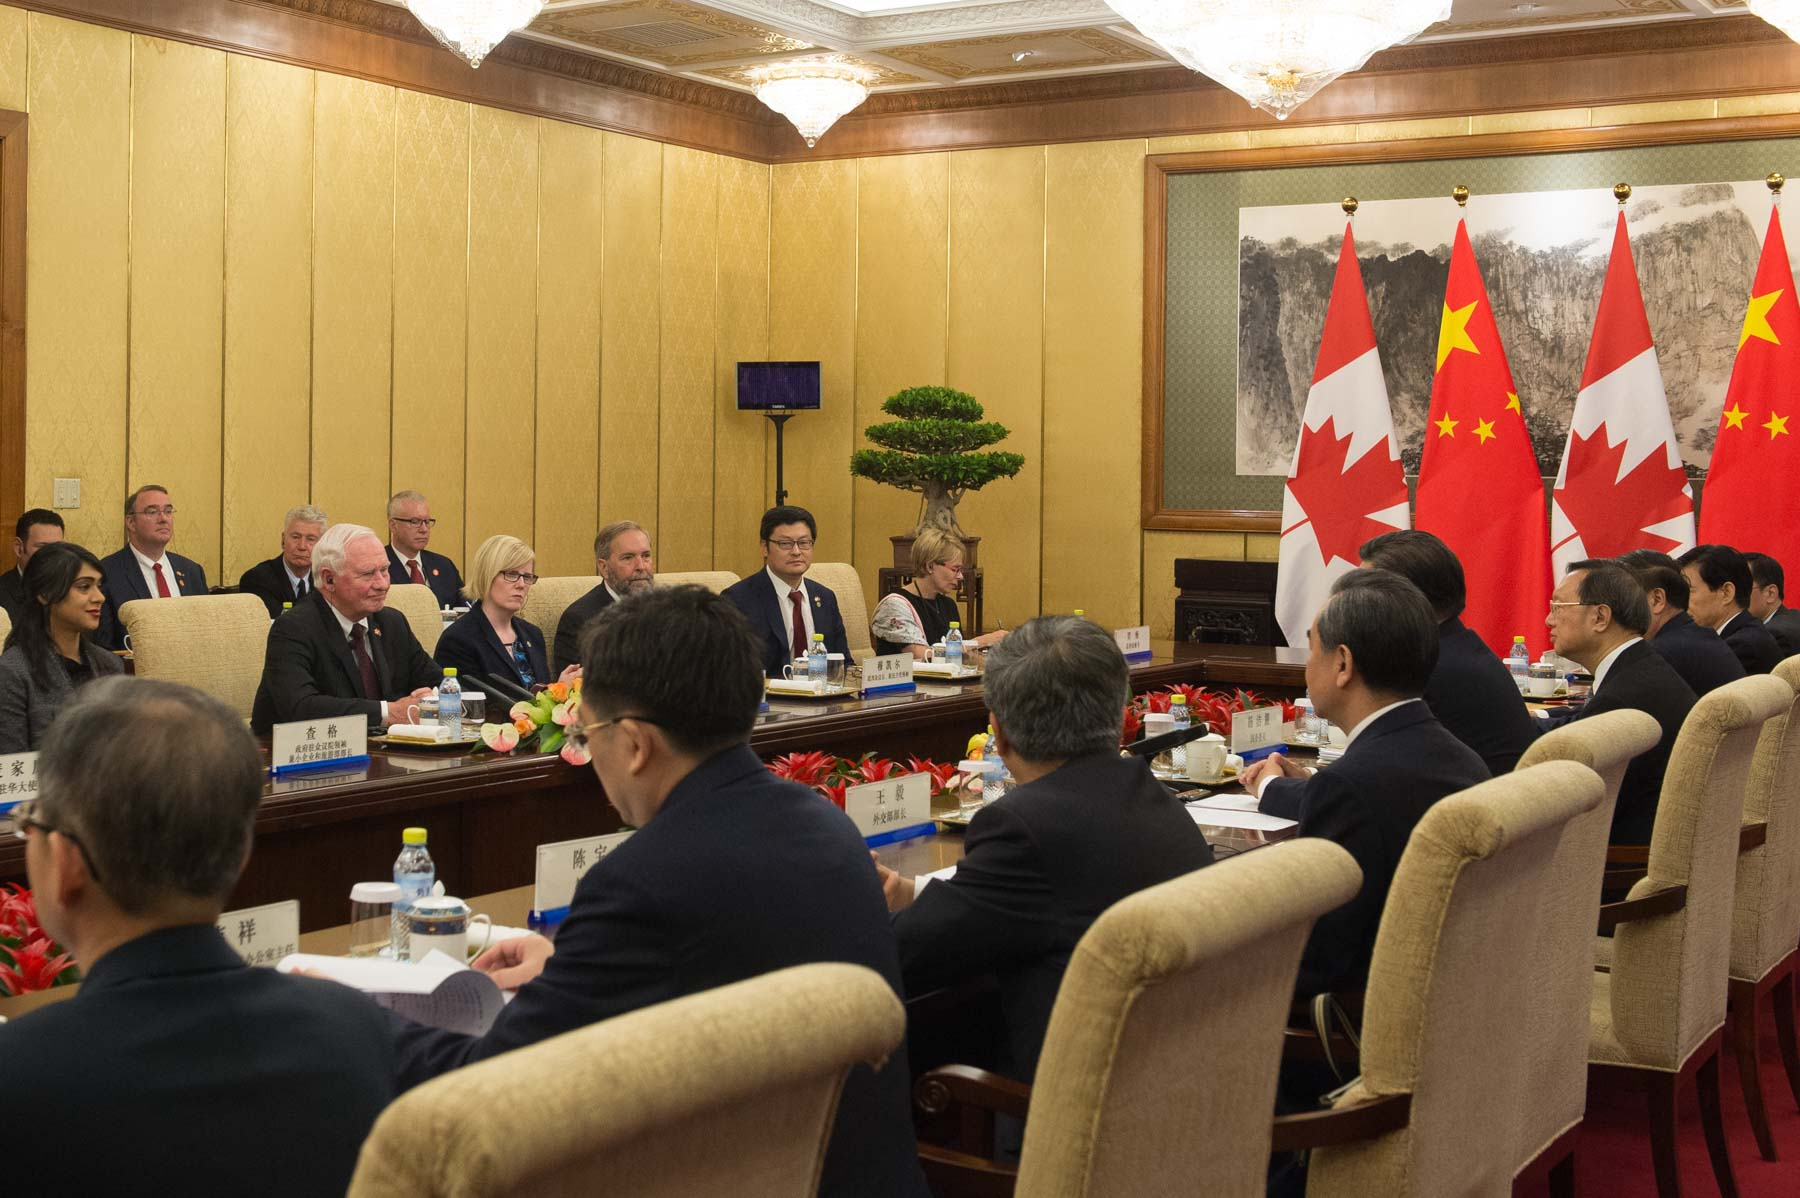 Members of the Canadian delegation and representatives of the Chinese government joined them for the meeting.